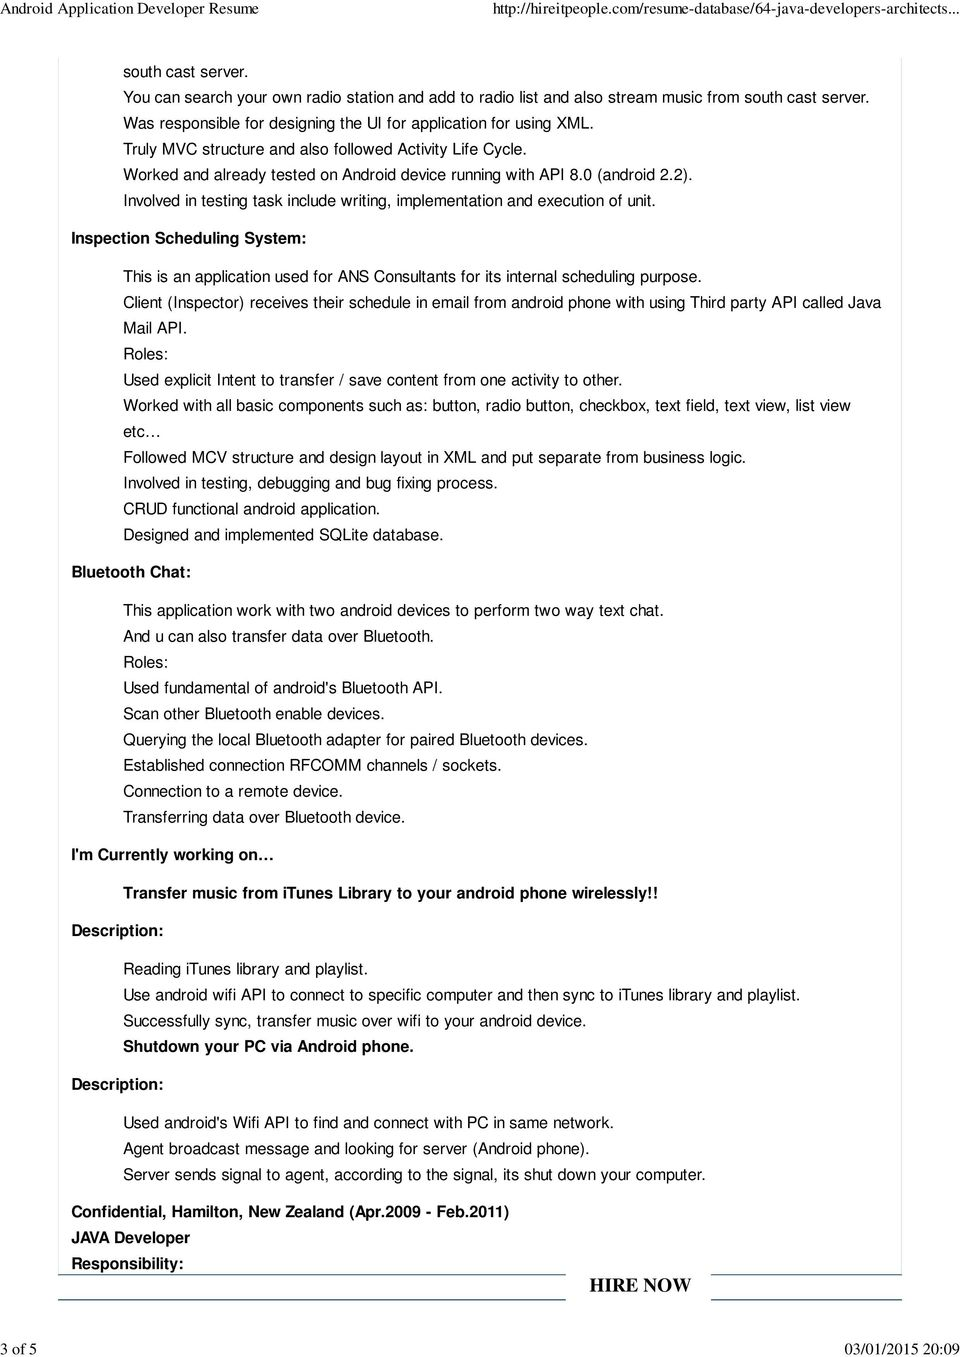 ANDROID APPLICATION DEVELOPER RESUME - PDF